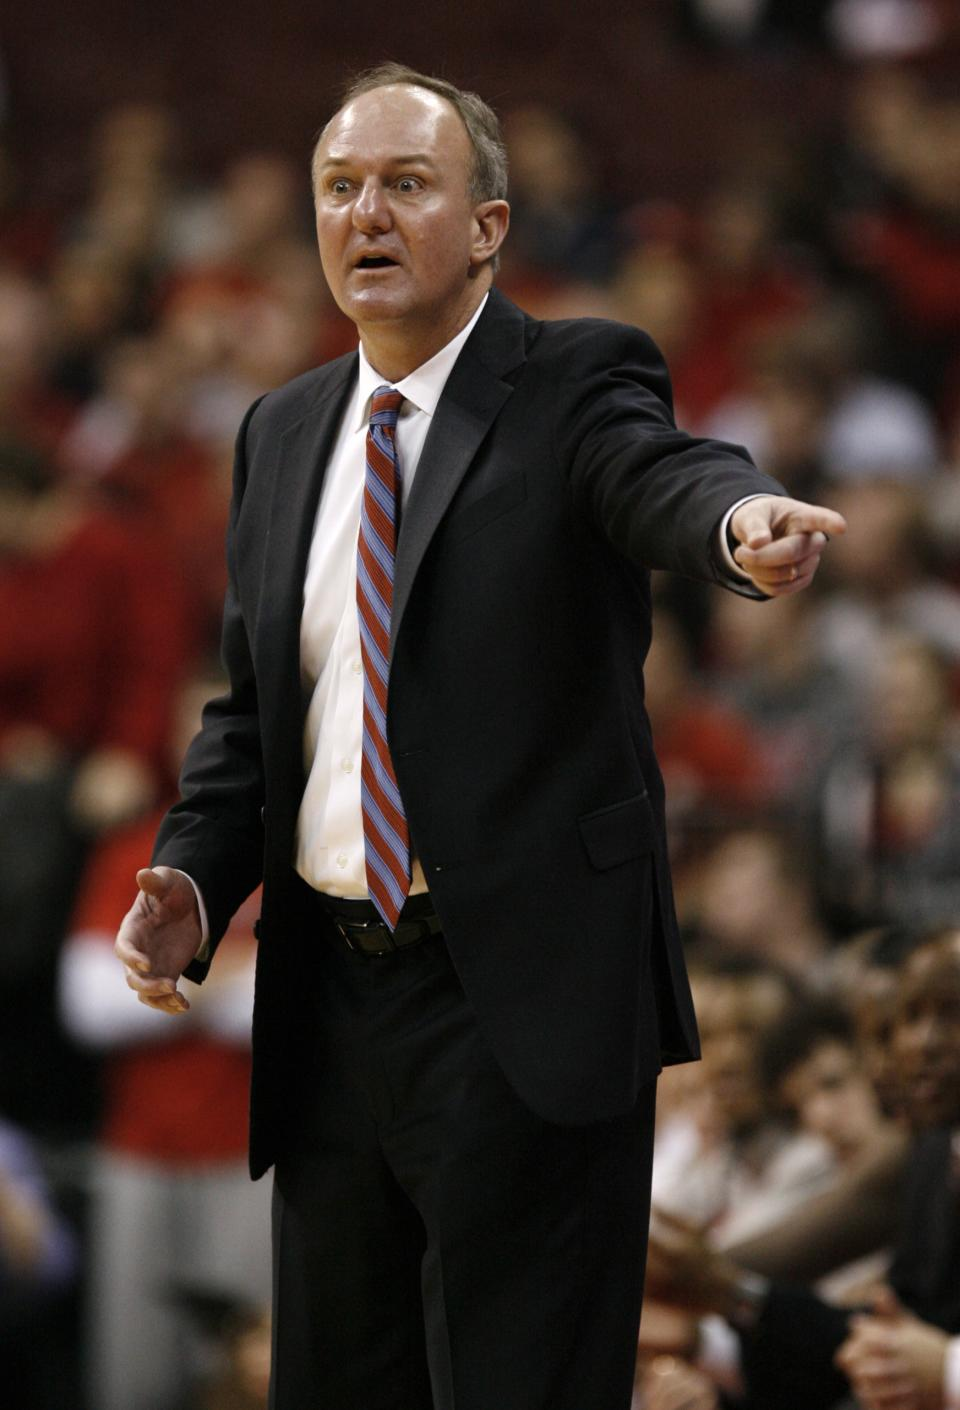 Ohio State coach Thad Matta reacts to a call during the first half of an NCAA college basketball game against UNC-Asheville in Columbus, Ohio, Saturday, Dec. 15, 2012. Ohio State won 90-72. (AP Photo/Paul Vernon)